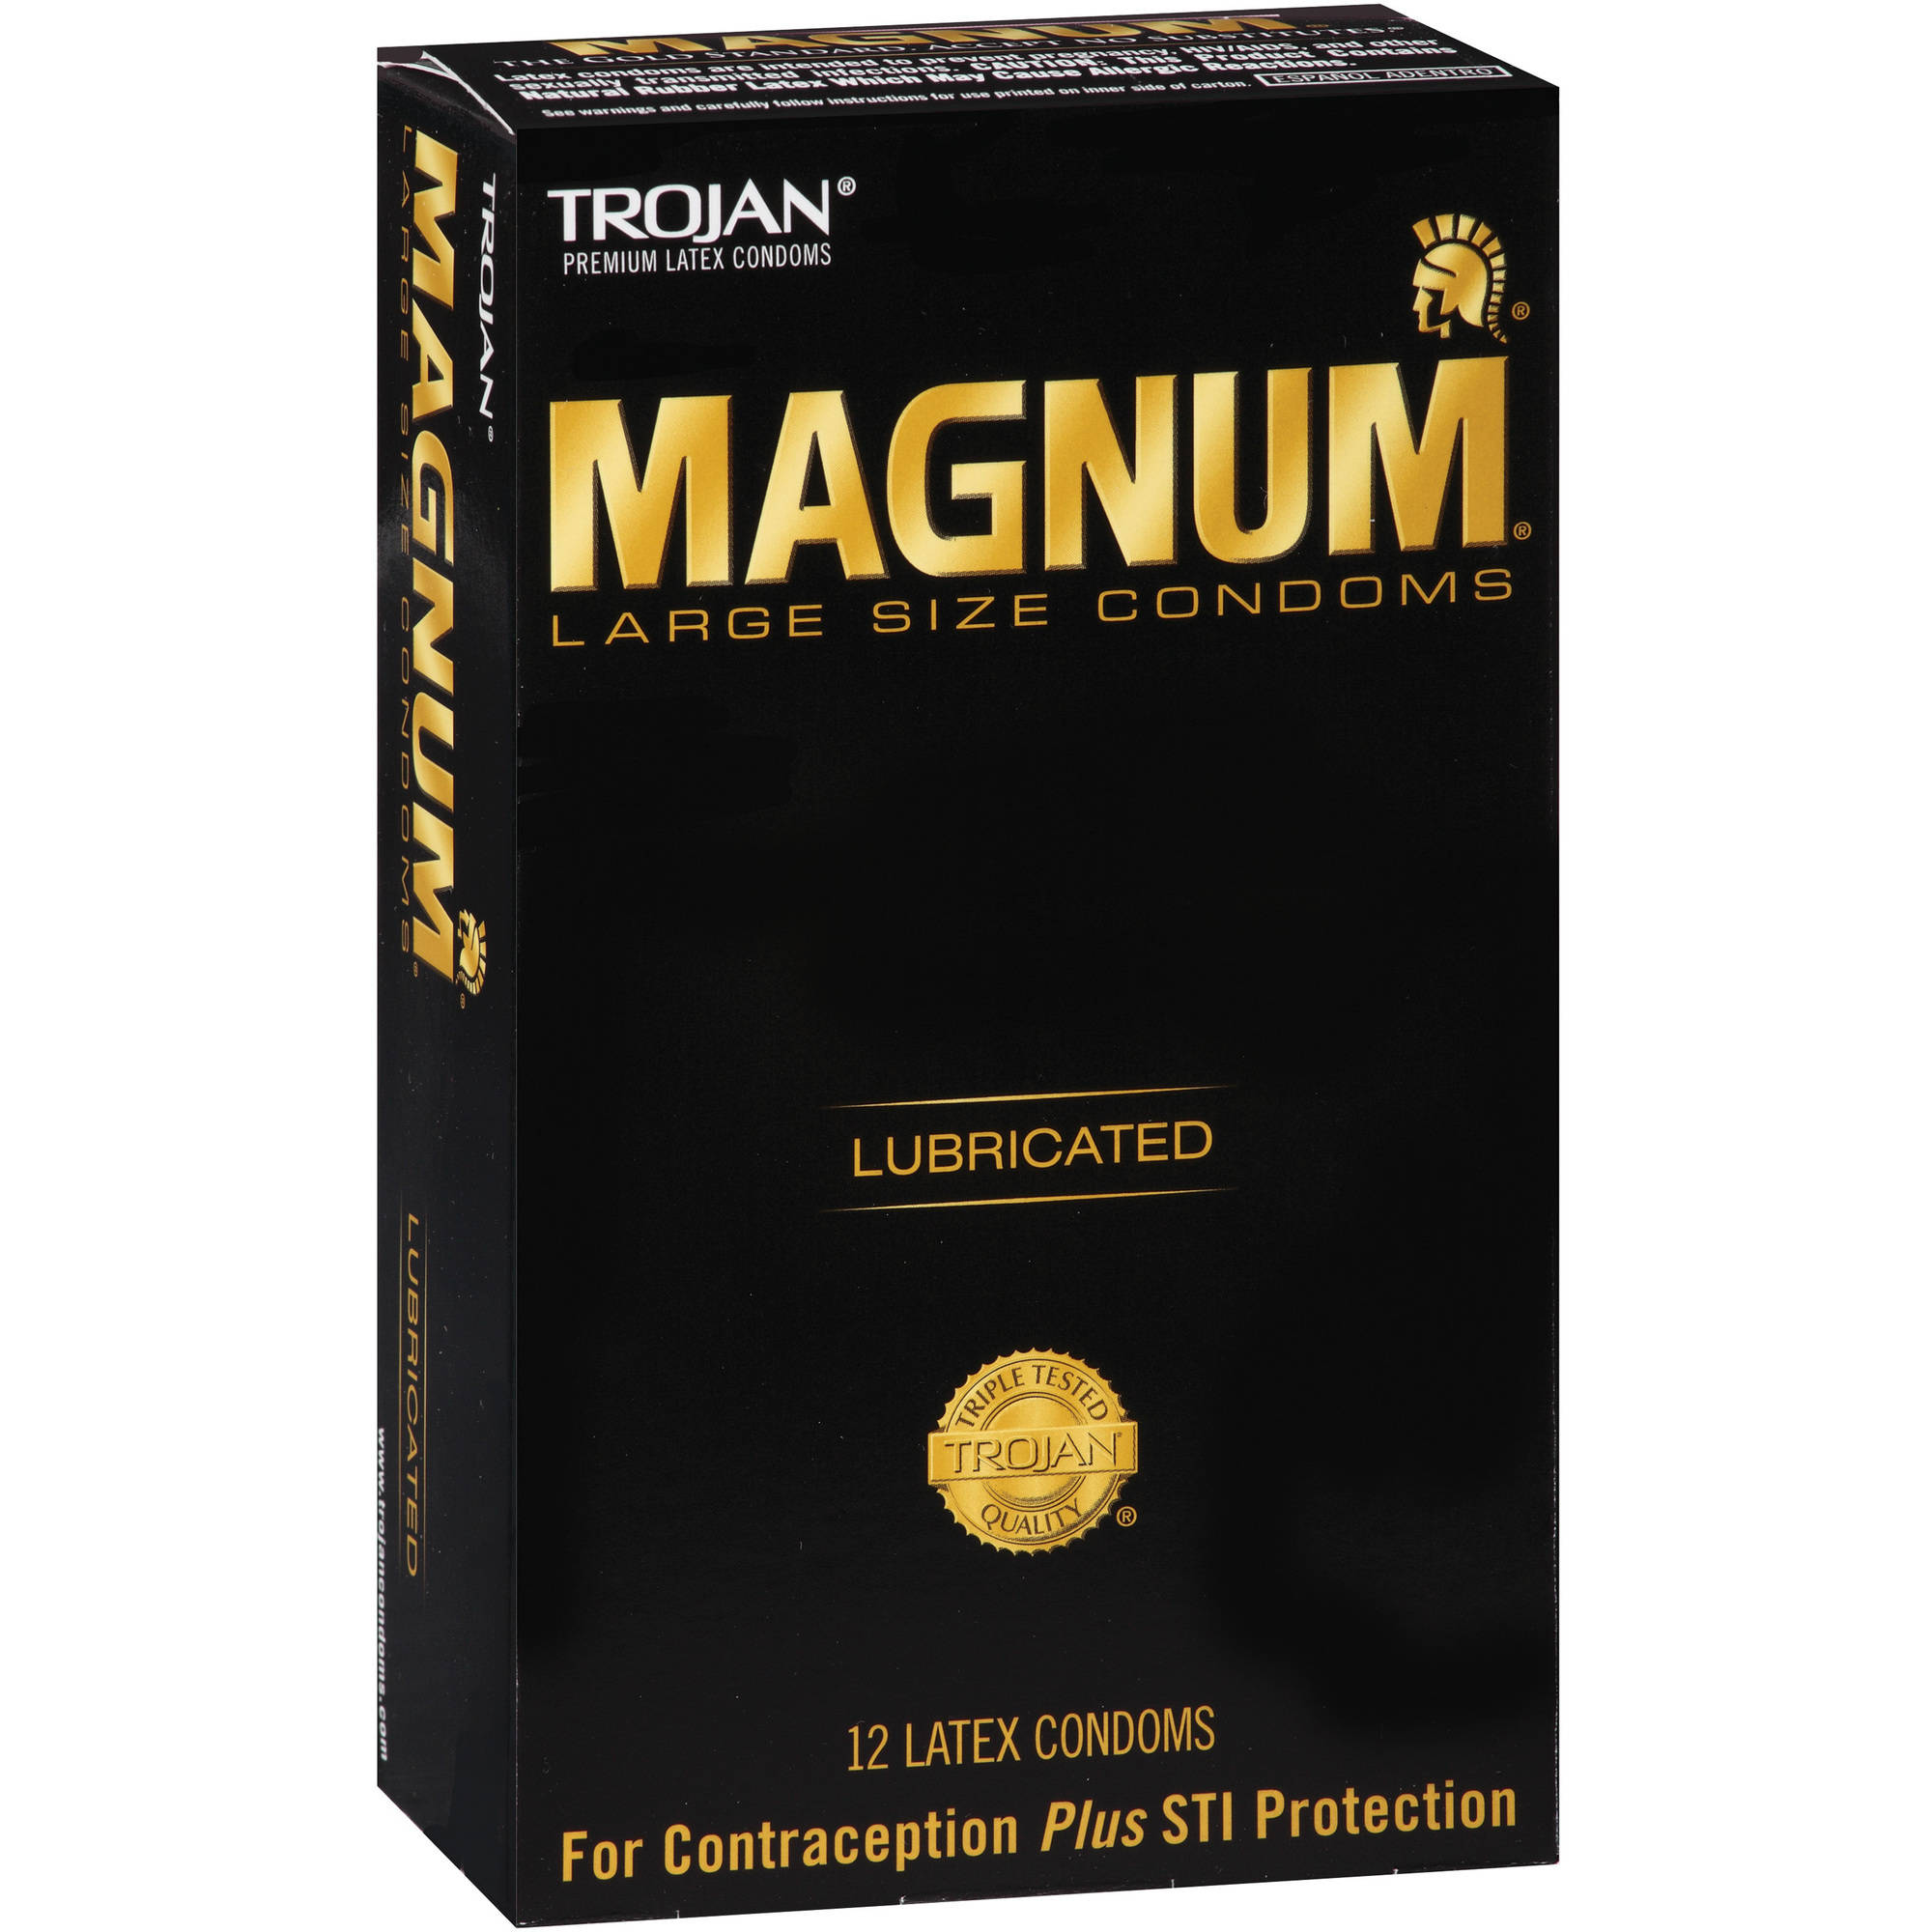 Trojan Magnum Lubricated Premium Latex Condoms, Large, 12 count